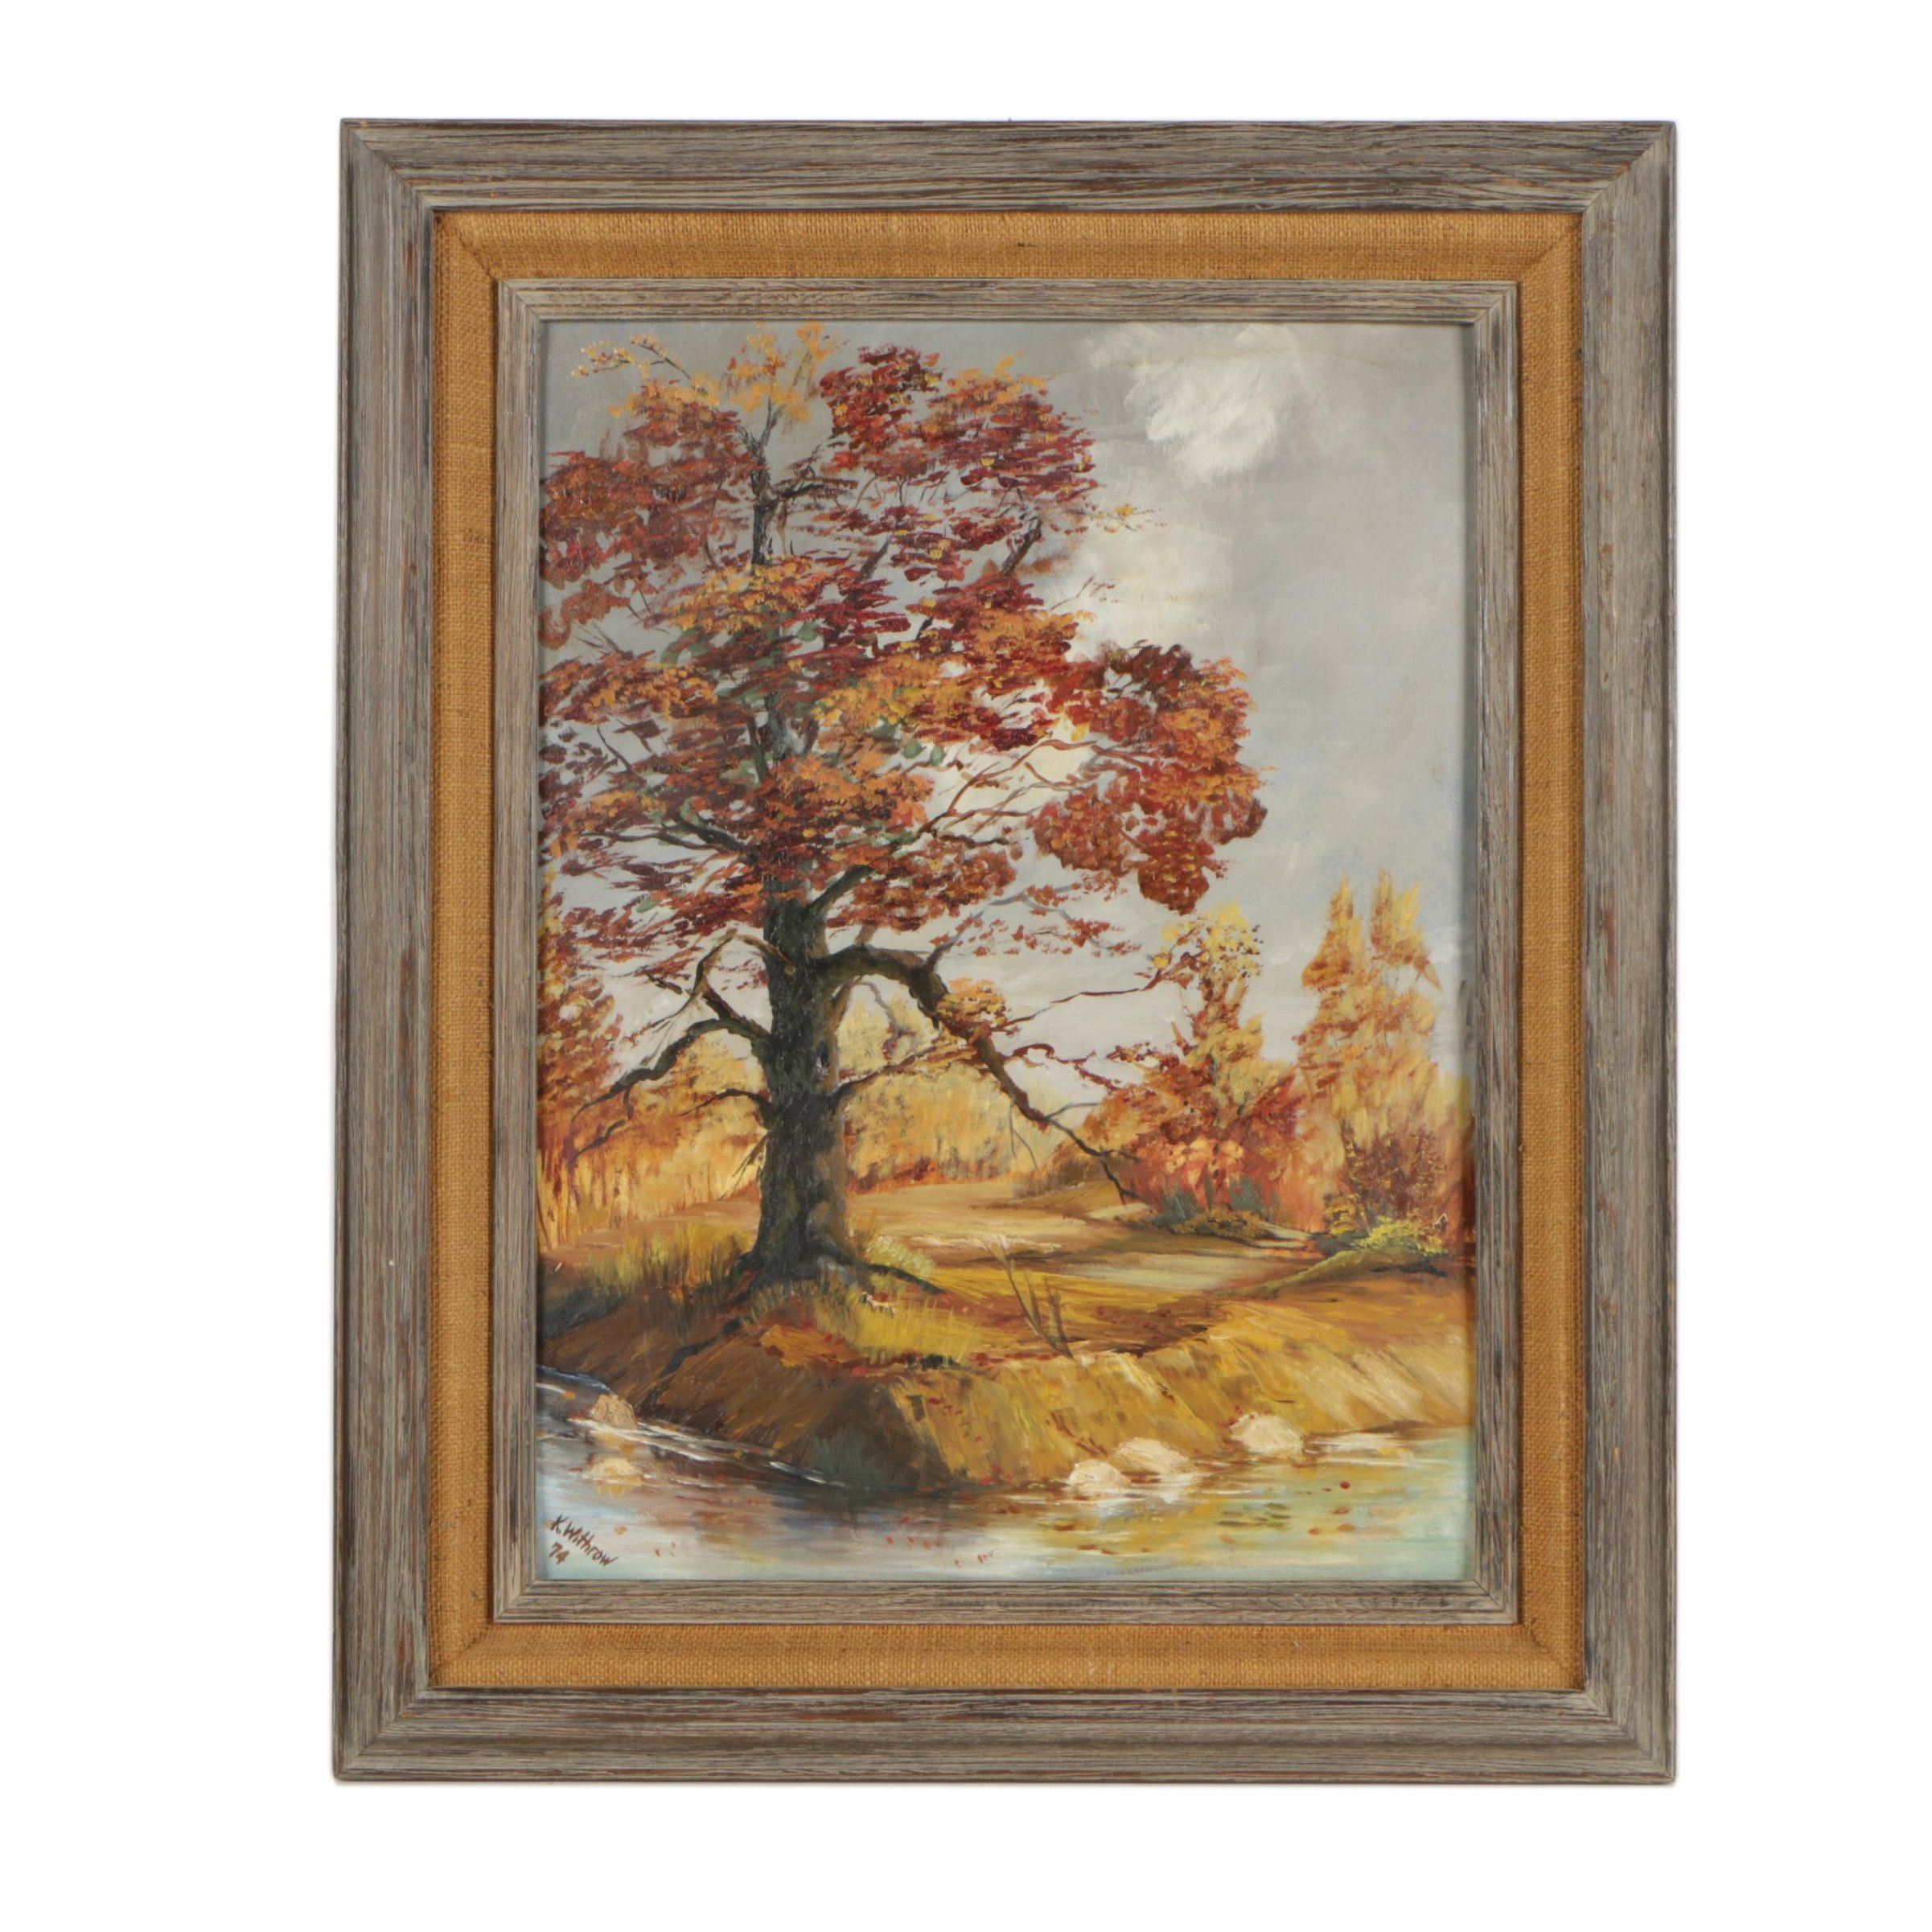 K. Withrow 1974 Oil Painting of Autumn River Landscape